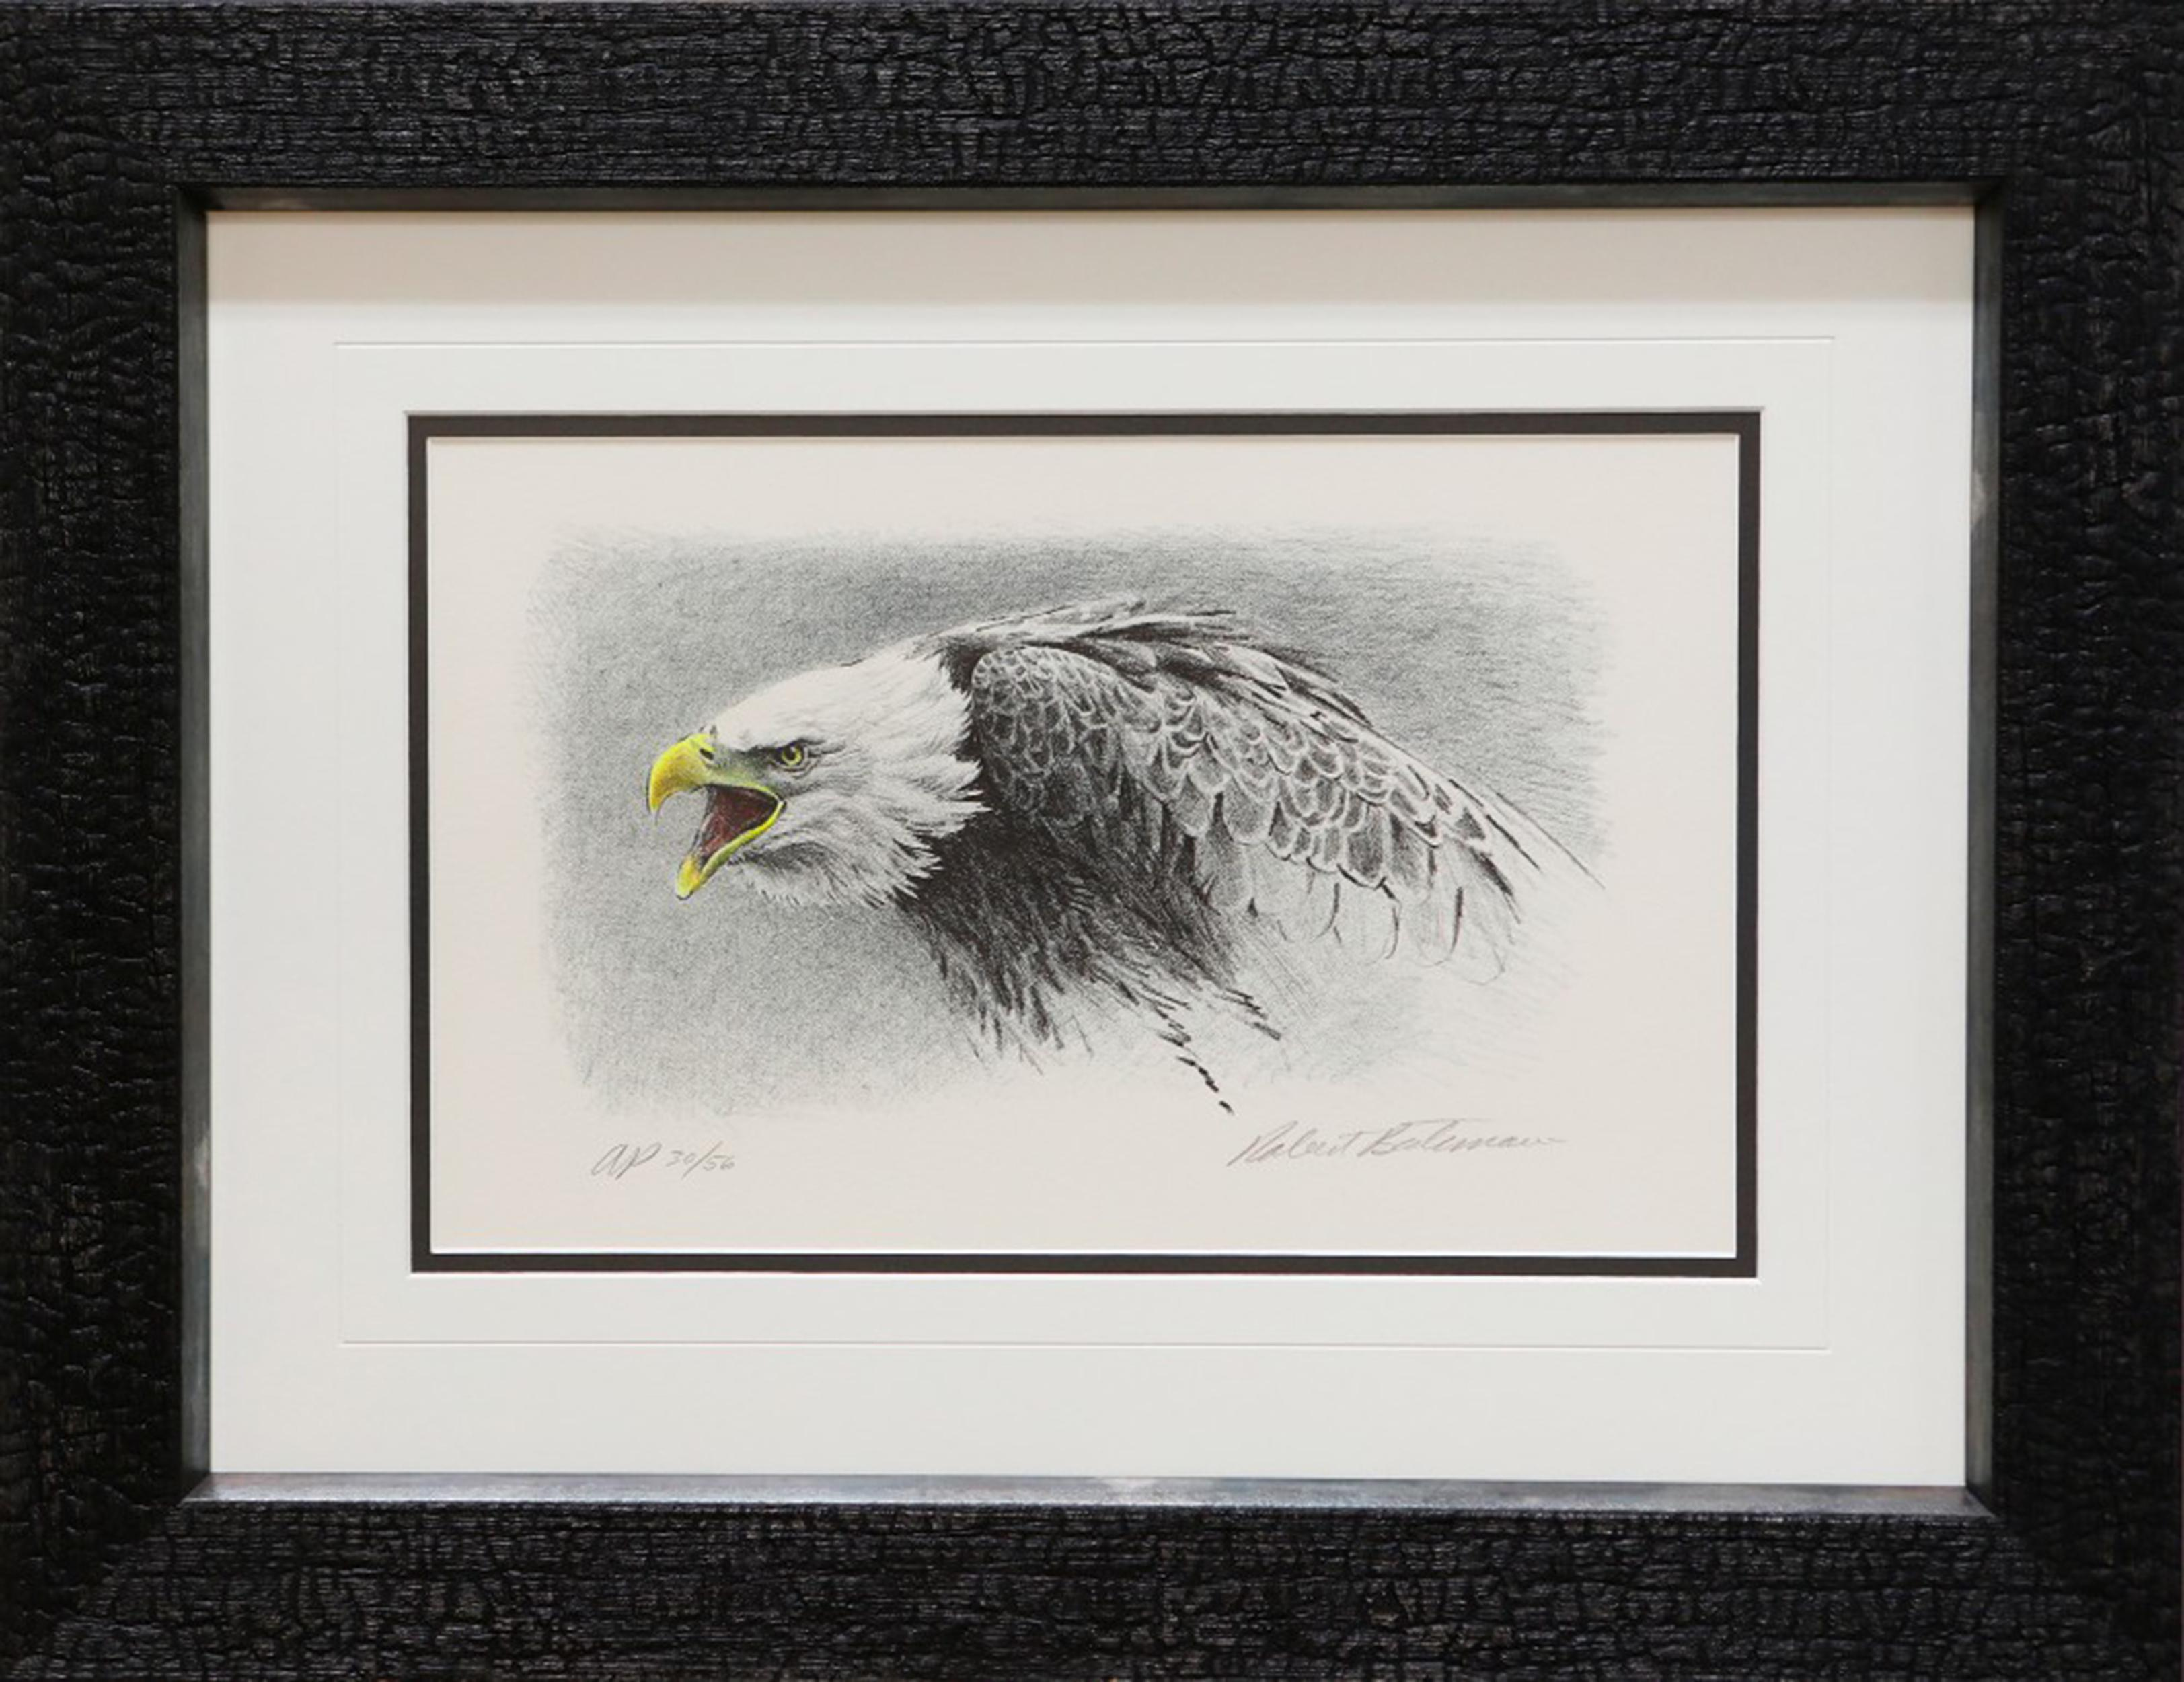 """Robert Bateman's """"Air, Forest and The Watch"""" Limited Edition Artist Proof Original Lithograph"""